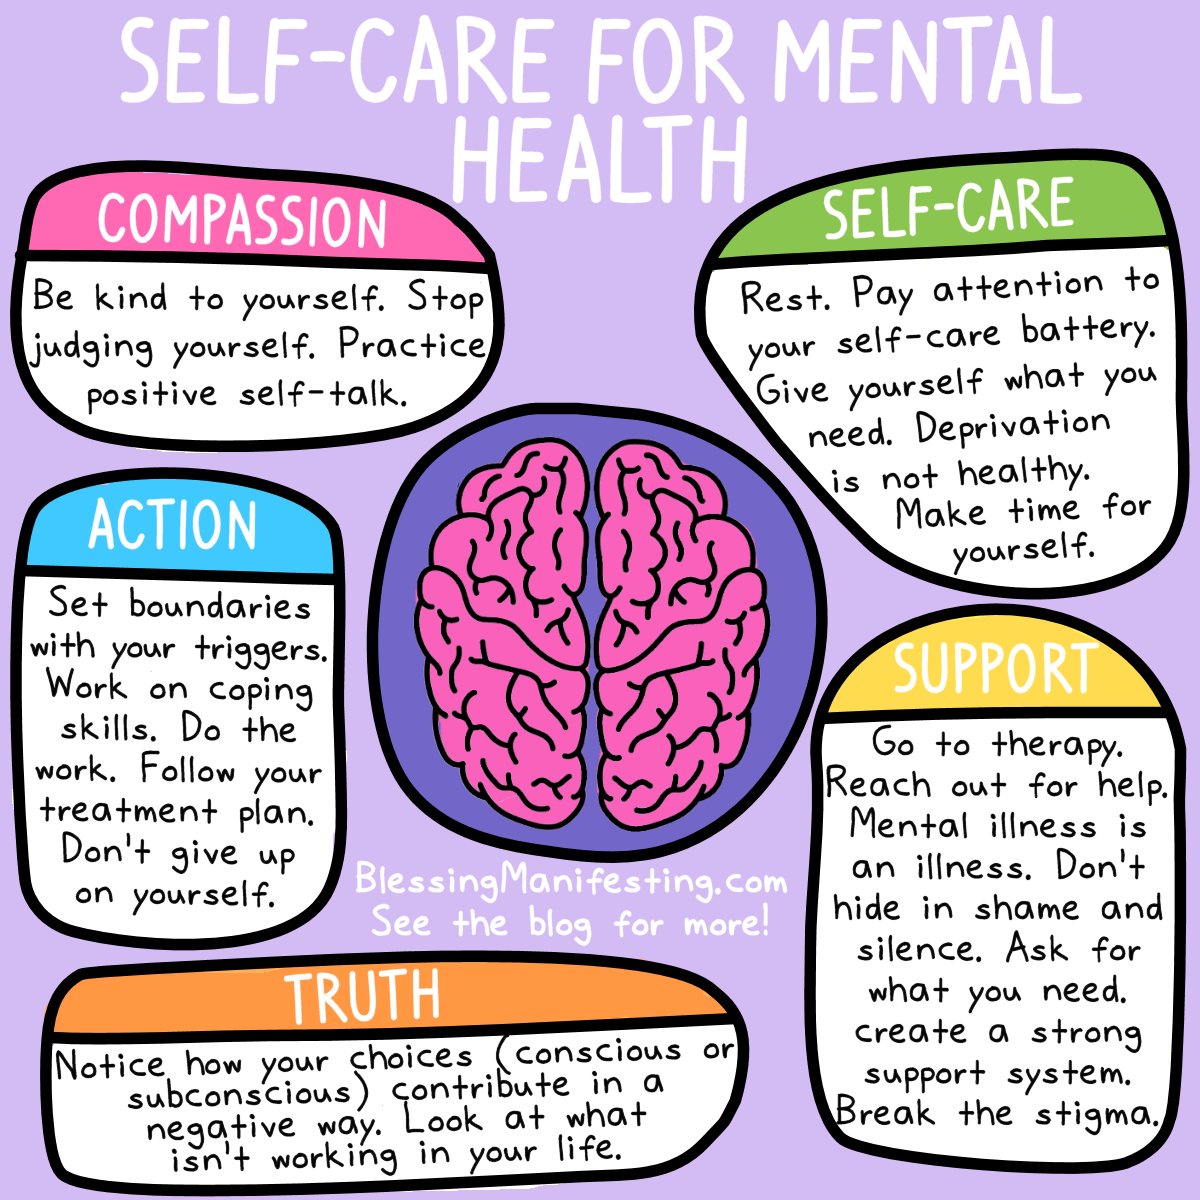 Self care for mental health